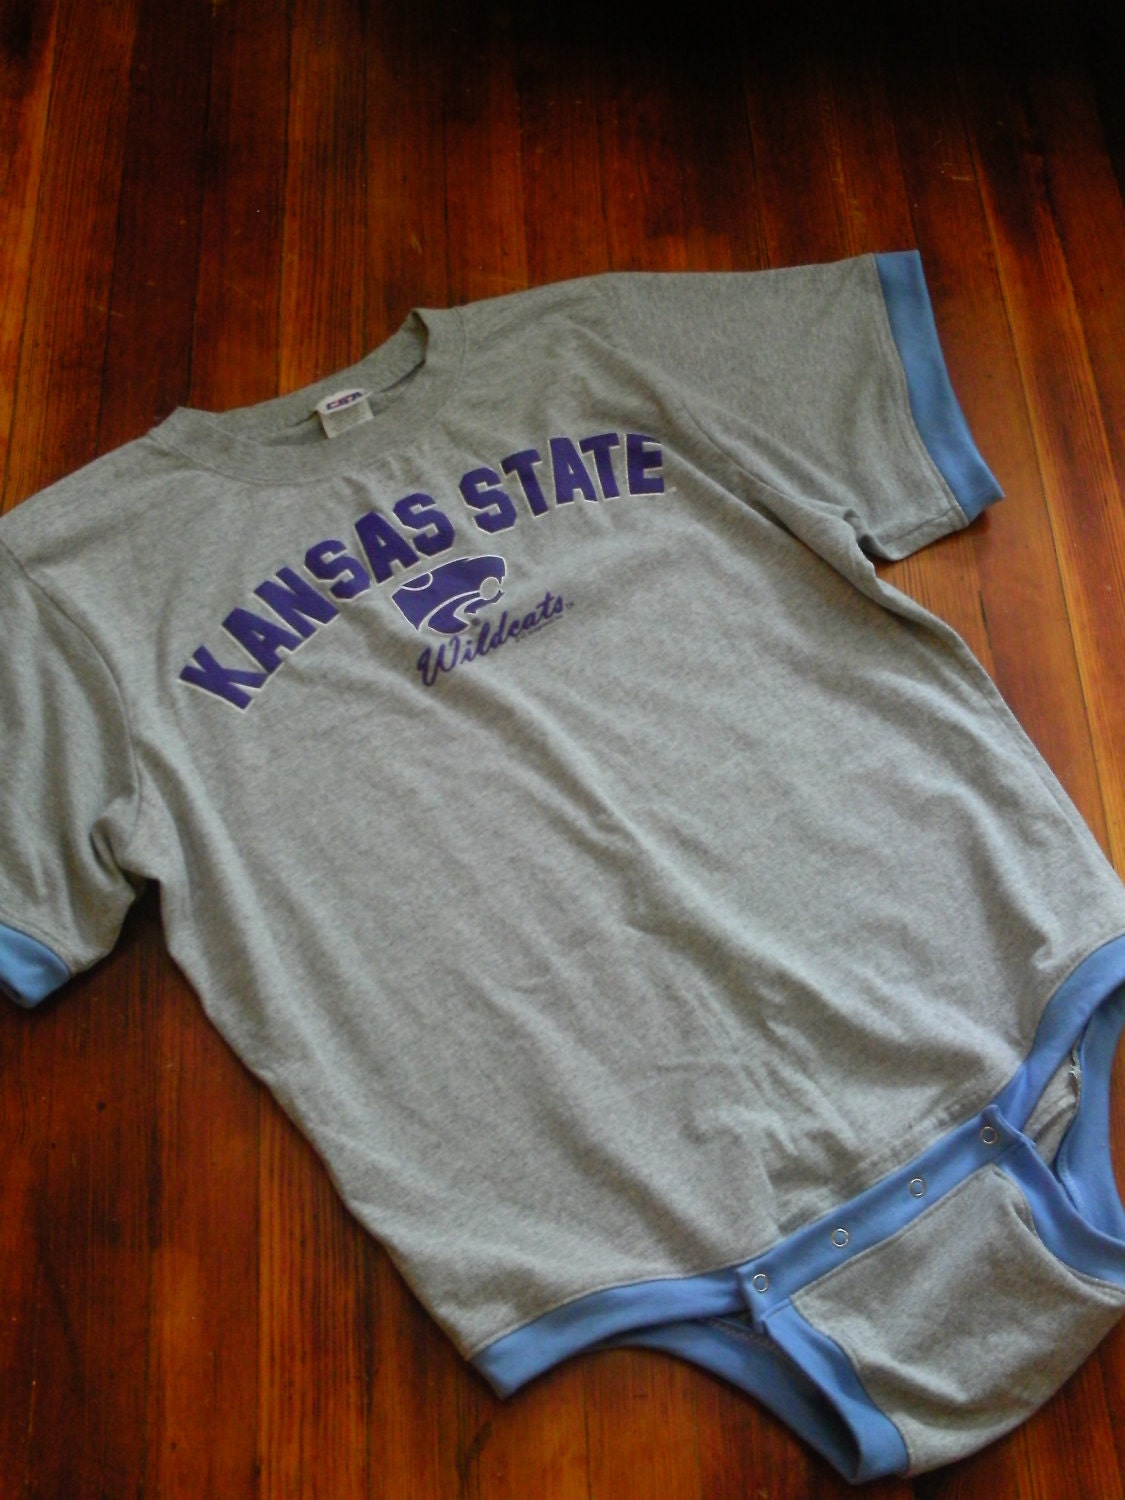 Adult-Sized Onesie, Kansas State Screen Print. From aidankid